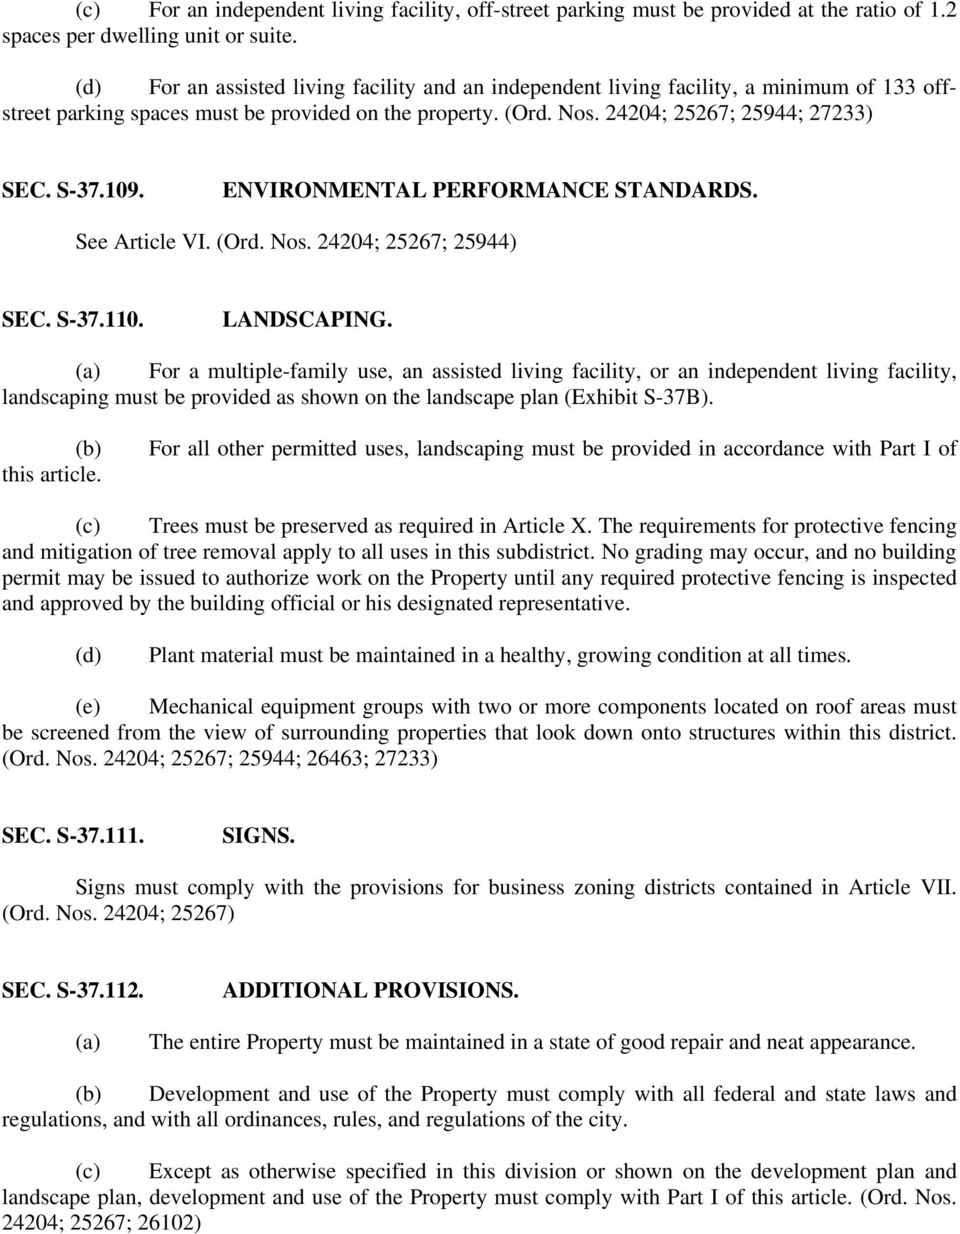 ENVIRONMENTAL PERFORMANCE STANDARDS. See Article VI. (Ord. Nos. 24204; 25267; 25944) SEC. S-37.110. LANDSCAPING.